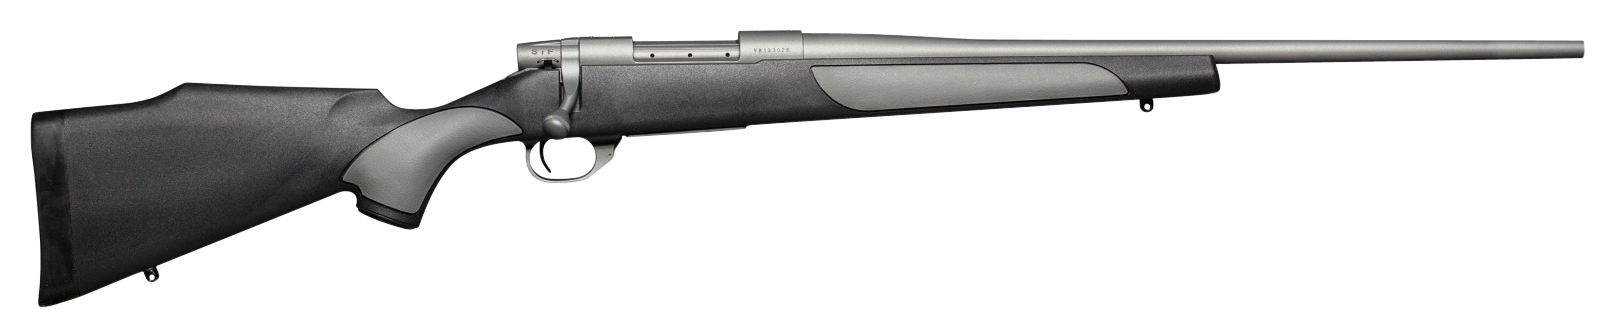 Weatherby Vanguard Weatherguard 243 Win 24